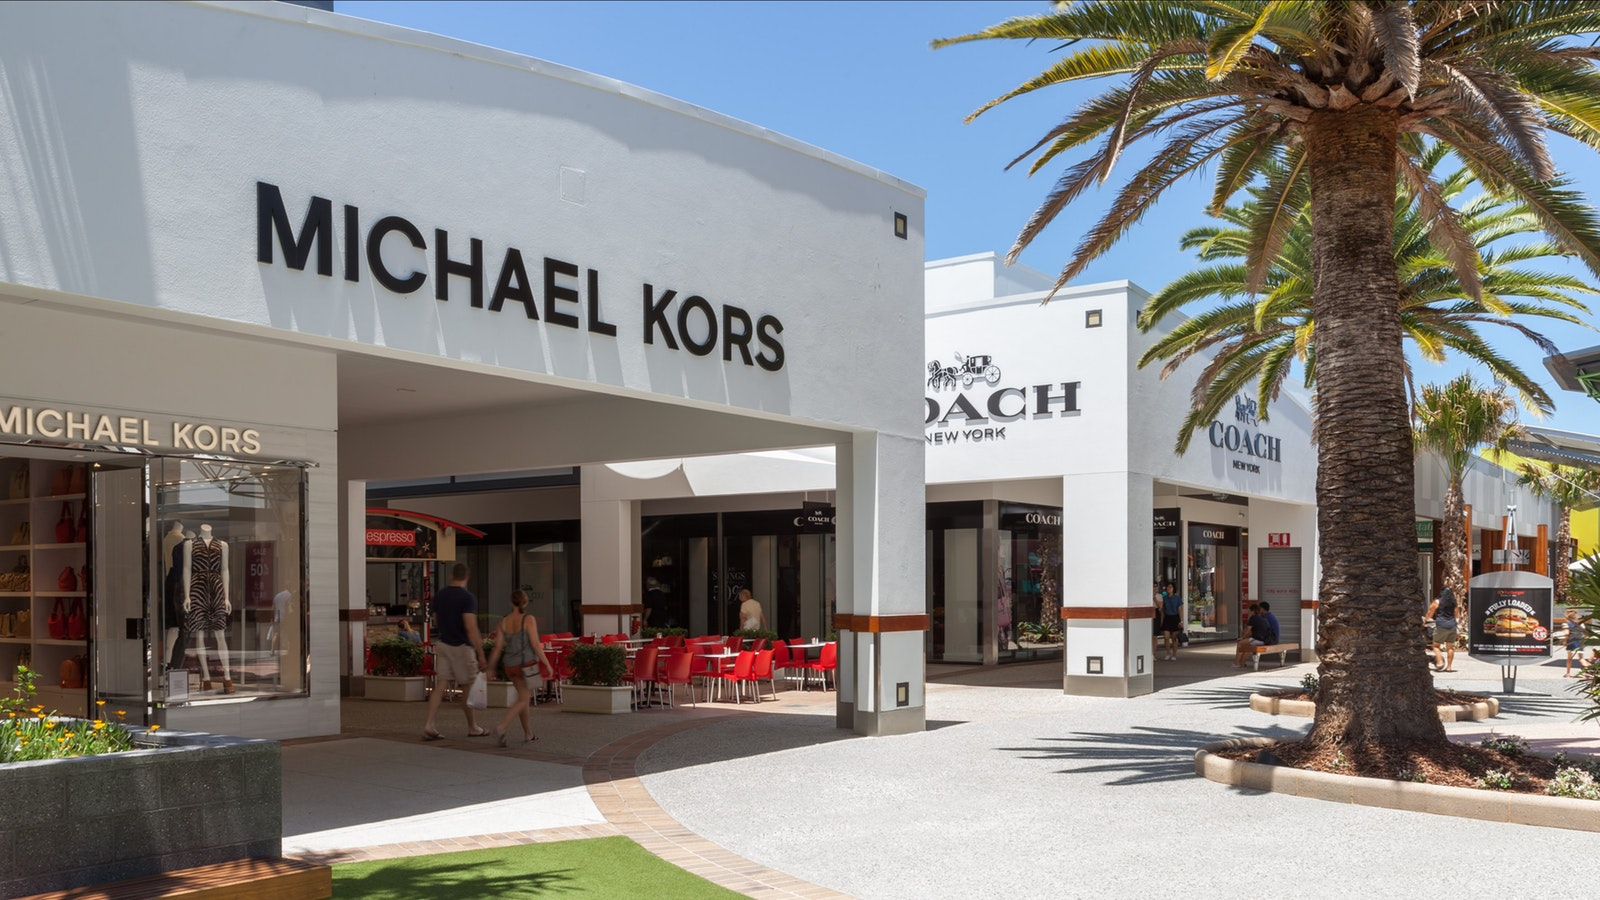 Premium Mall outside Coach and Michael Kors